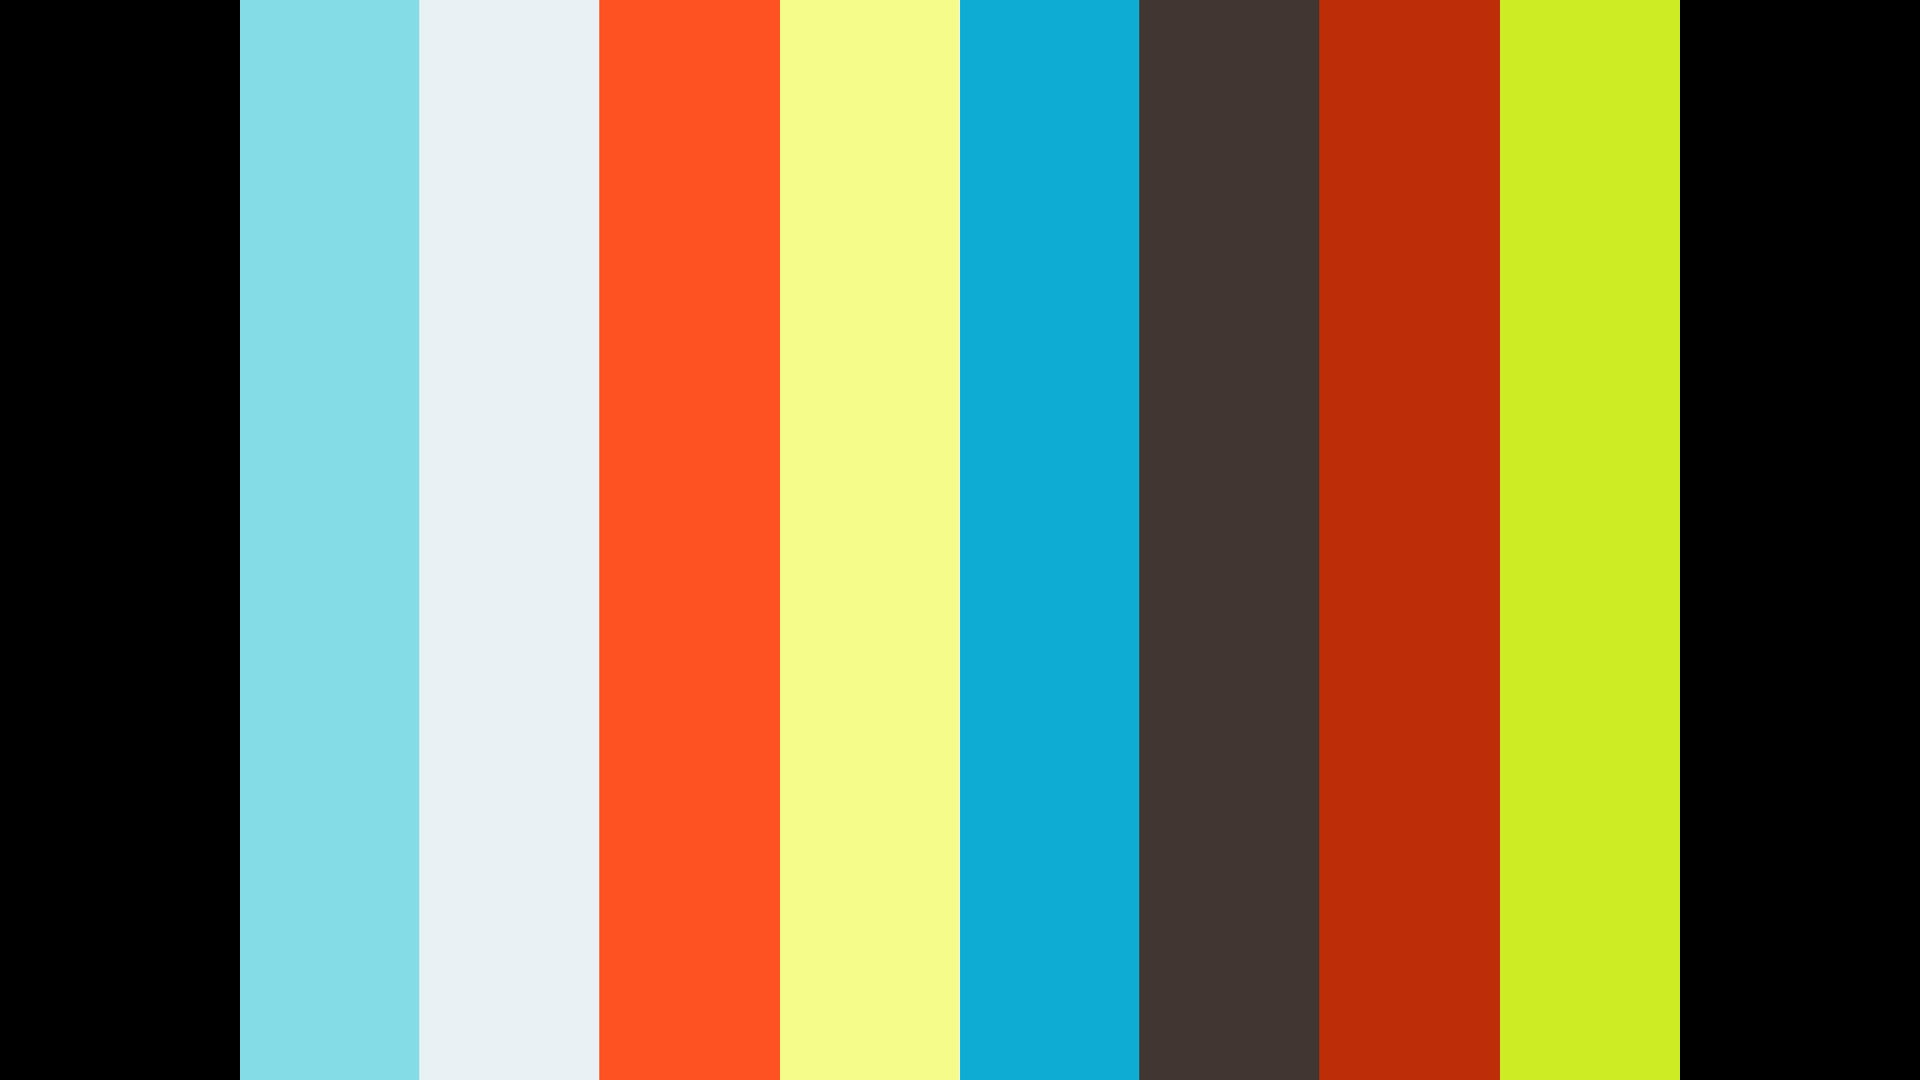 GOLD ETF (GLD) Video Nov 2015